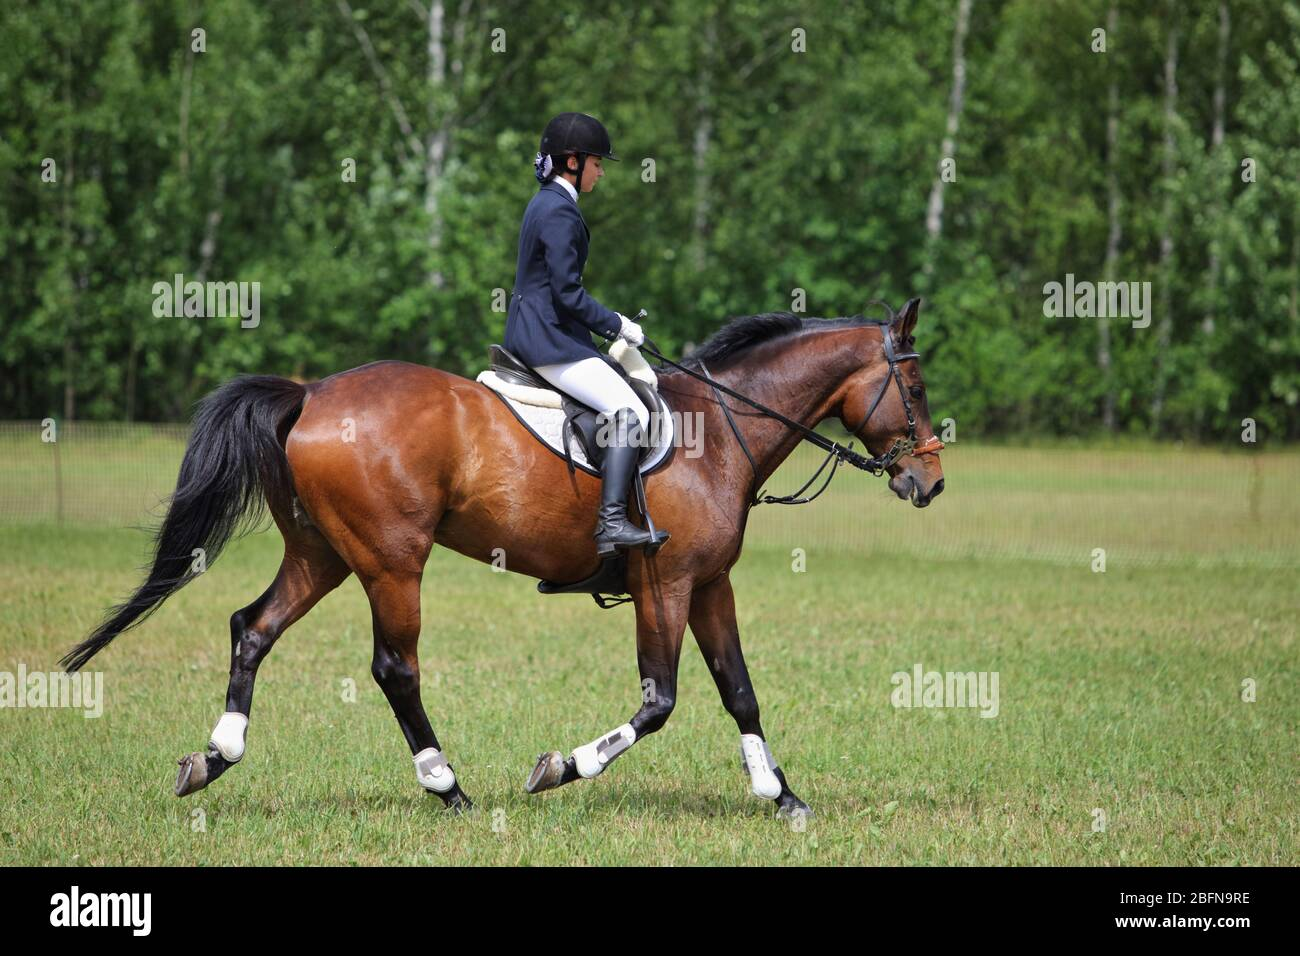 Equestrian Clothes High Resolution Stock Photography And Images Alamy